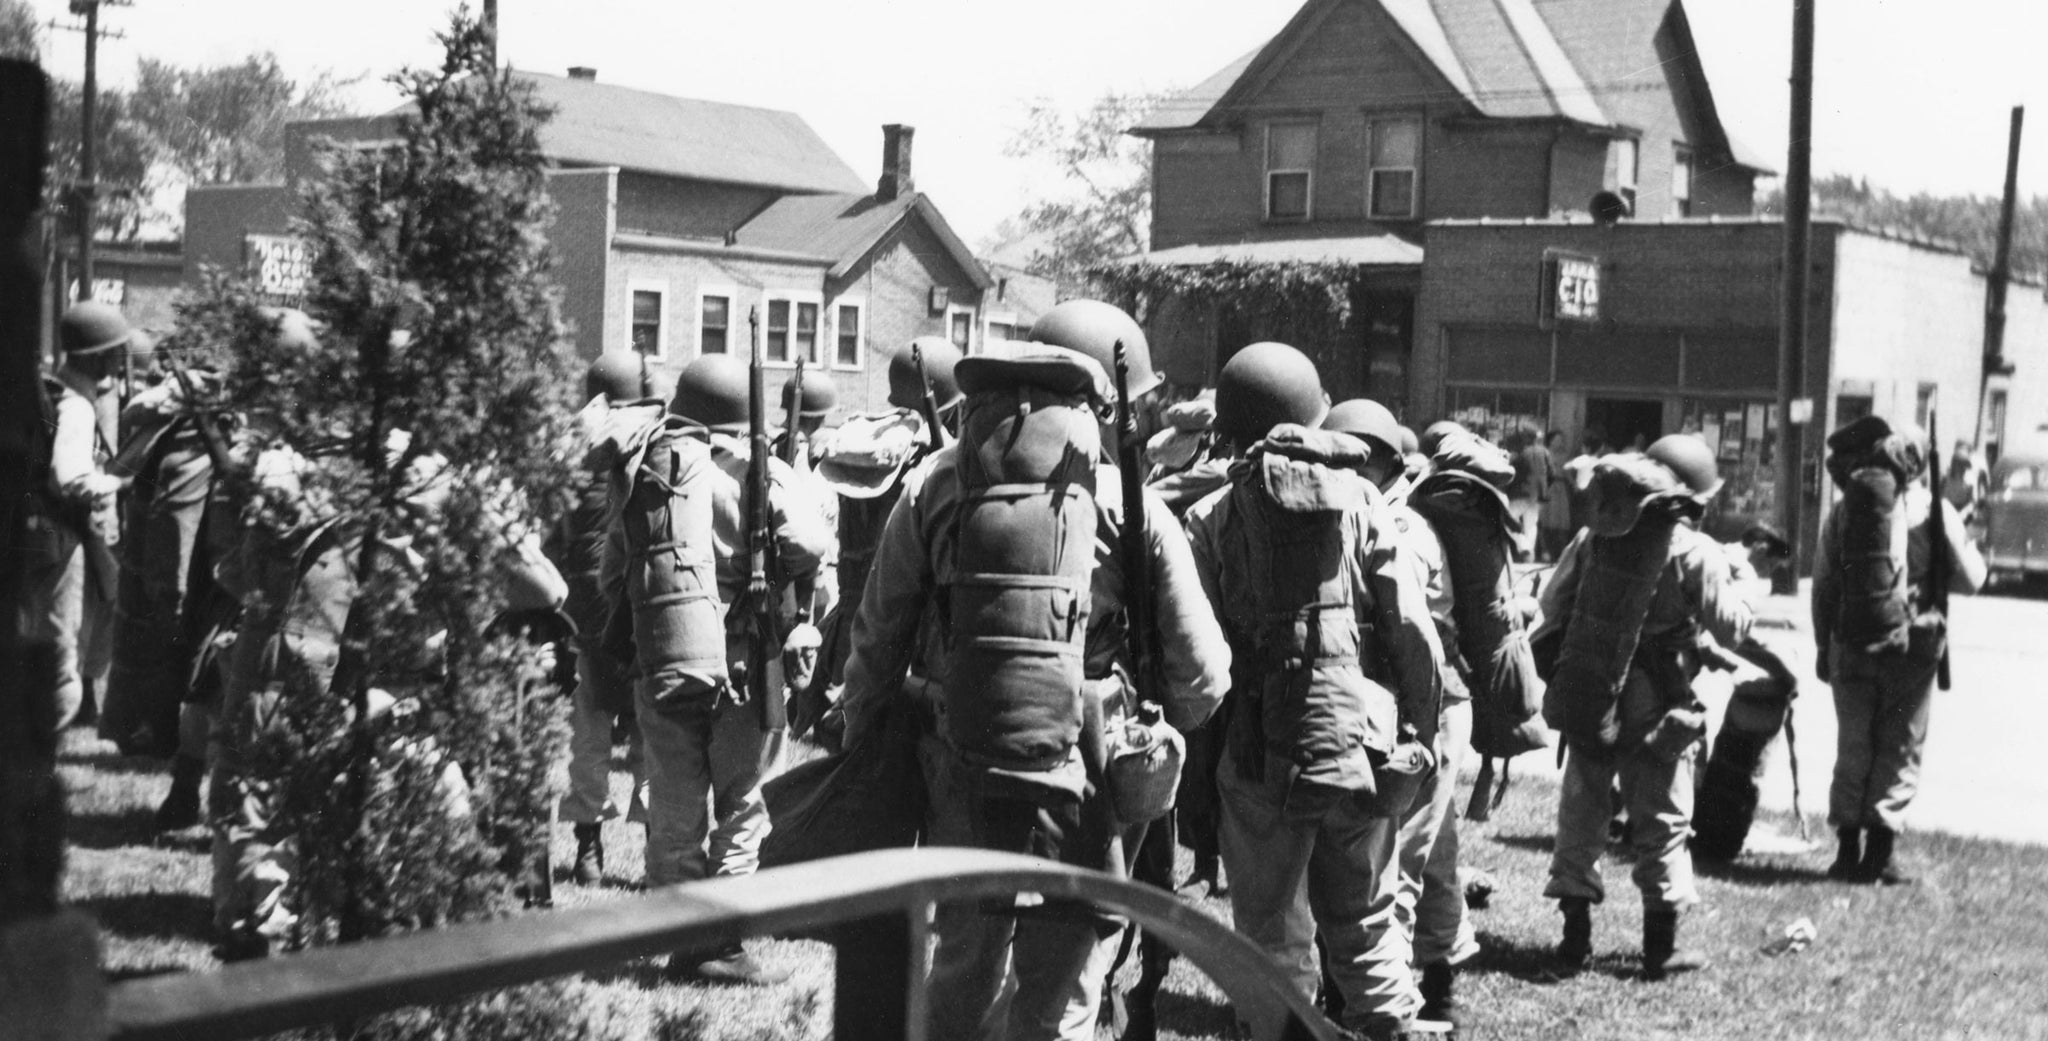 The national guard after being called in to monitor the Rath Packing Company strike in 1948. -- Leo R. Larson